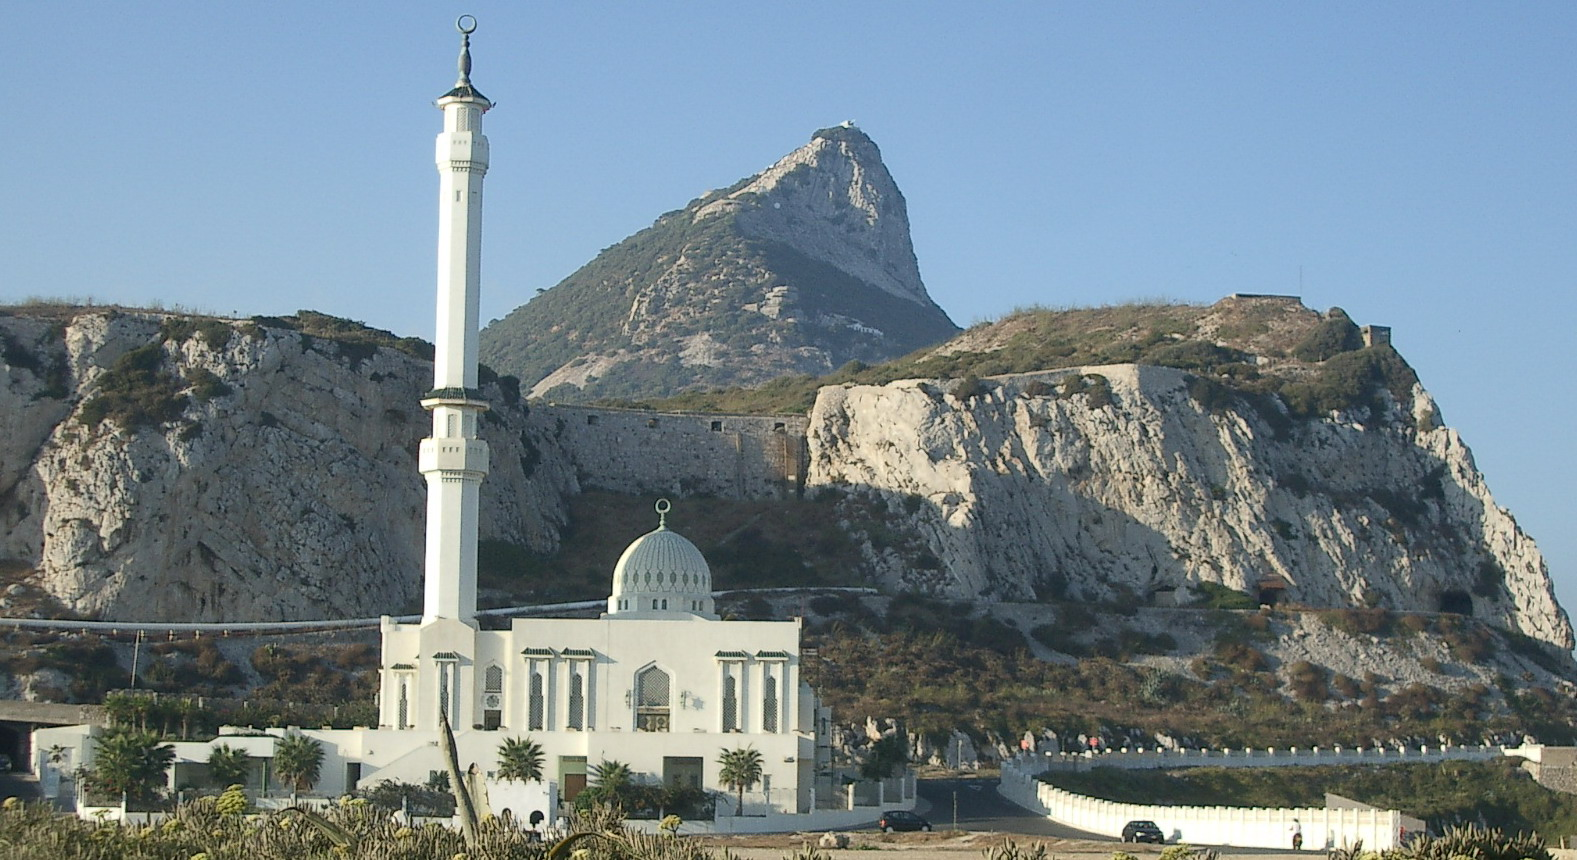 http://upload.wikimedia.org/wikipedia/commons/9/9d/Abdulaziz_Mosque_Gibraltar.jpg